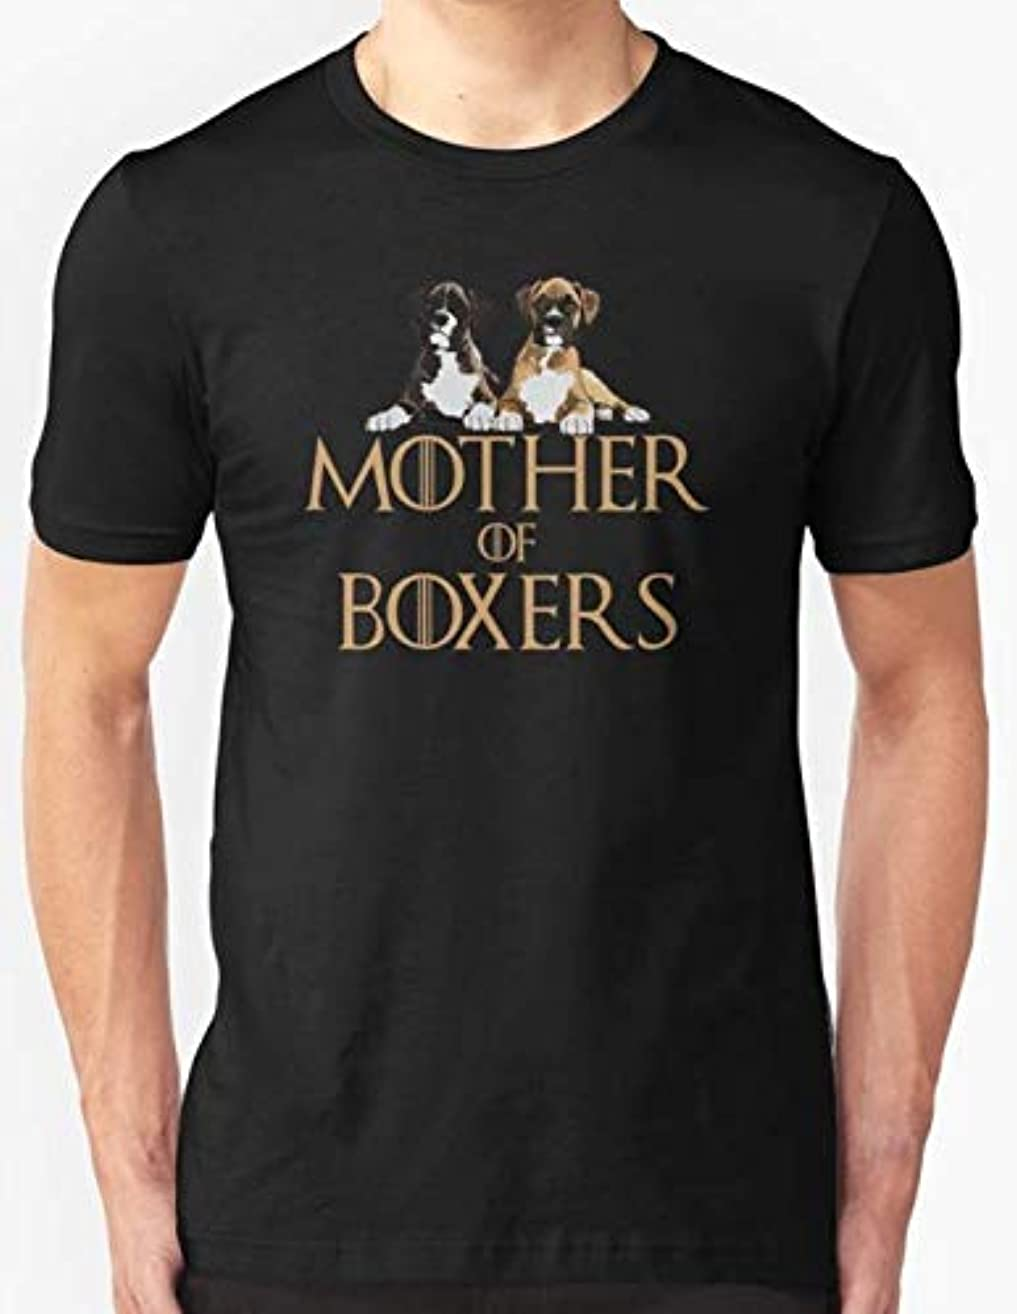 Boxer Dog Funny Design - Mother Of Boxers Slim Fit T-Shirt For Man and Woman